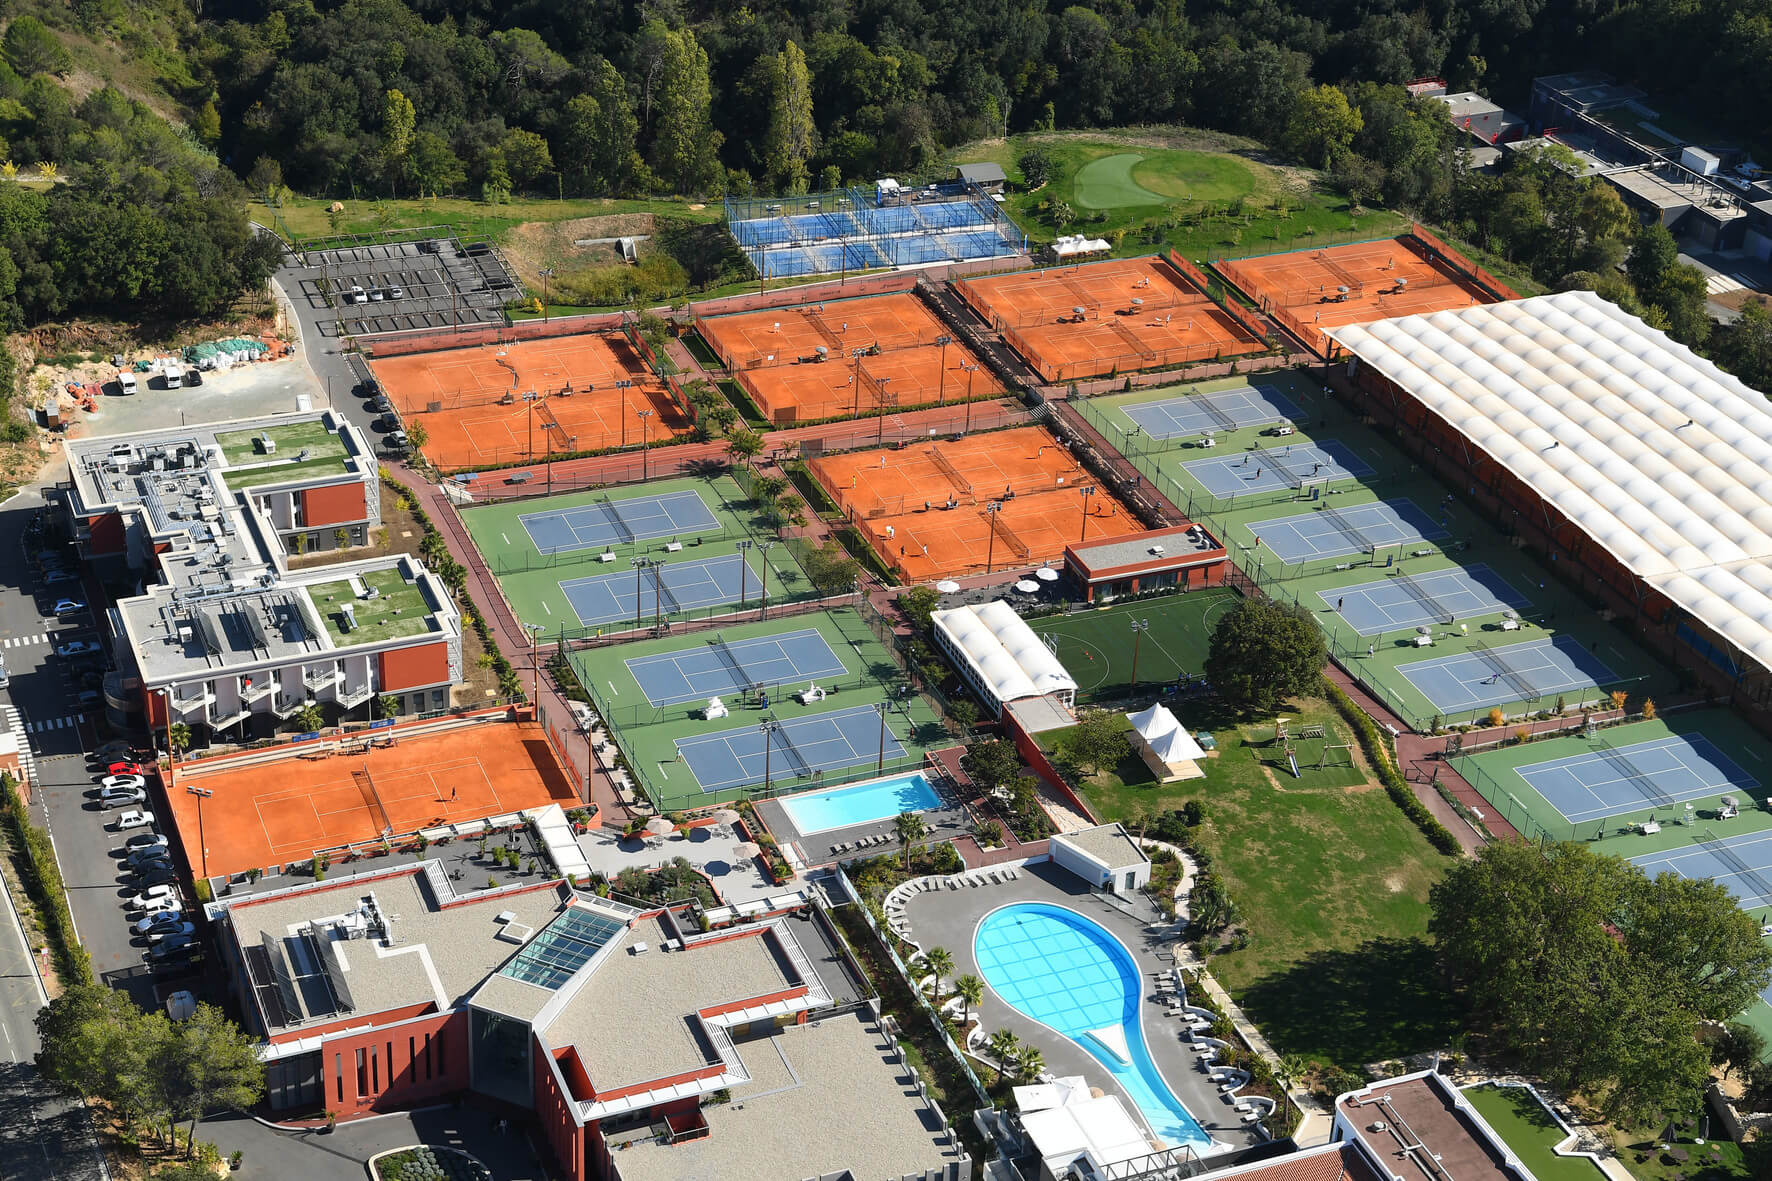 resort-tennis-academy